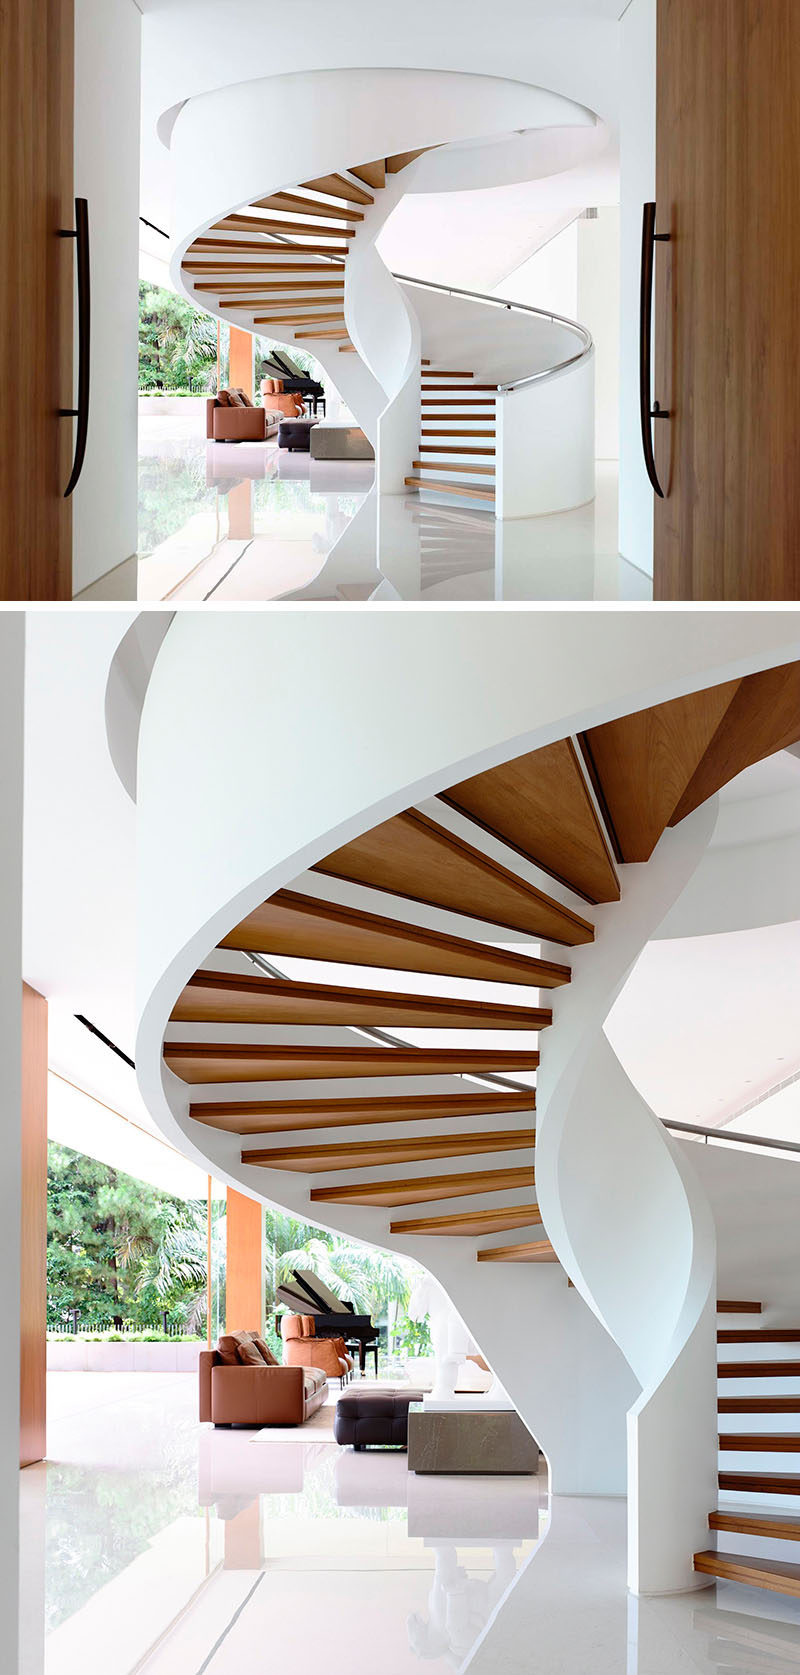 A grand spiral staircase created by floating wood treads between the two white sides rises up into the next floor and welcomes people as they enter the home. #SpiralStairs #SpiralStaircase #ModernSpiralStairs